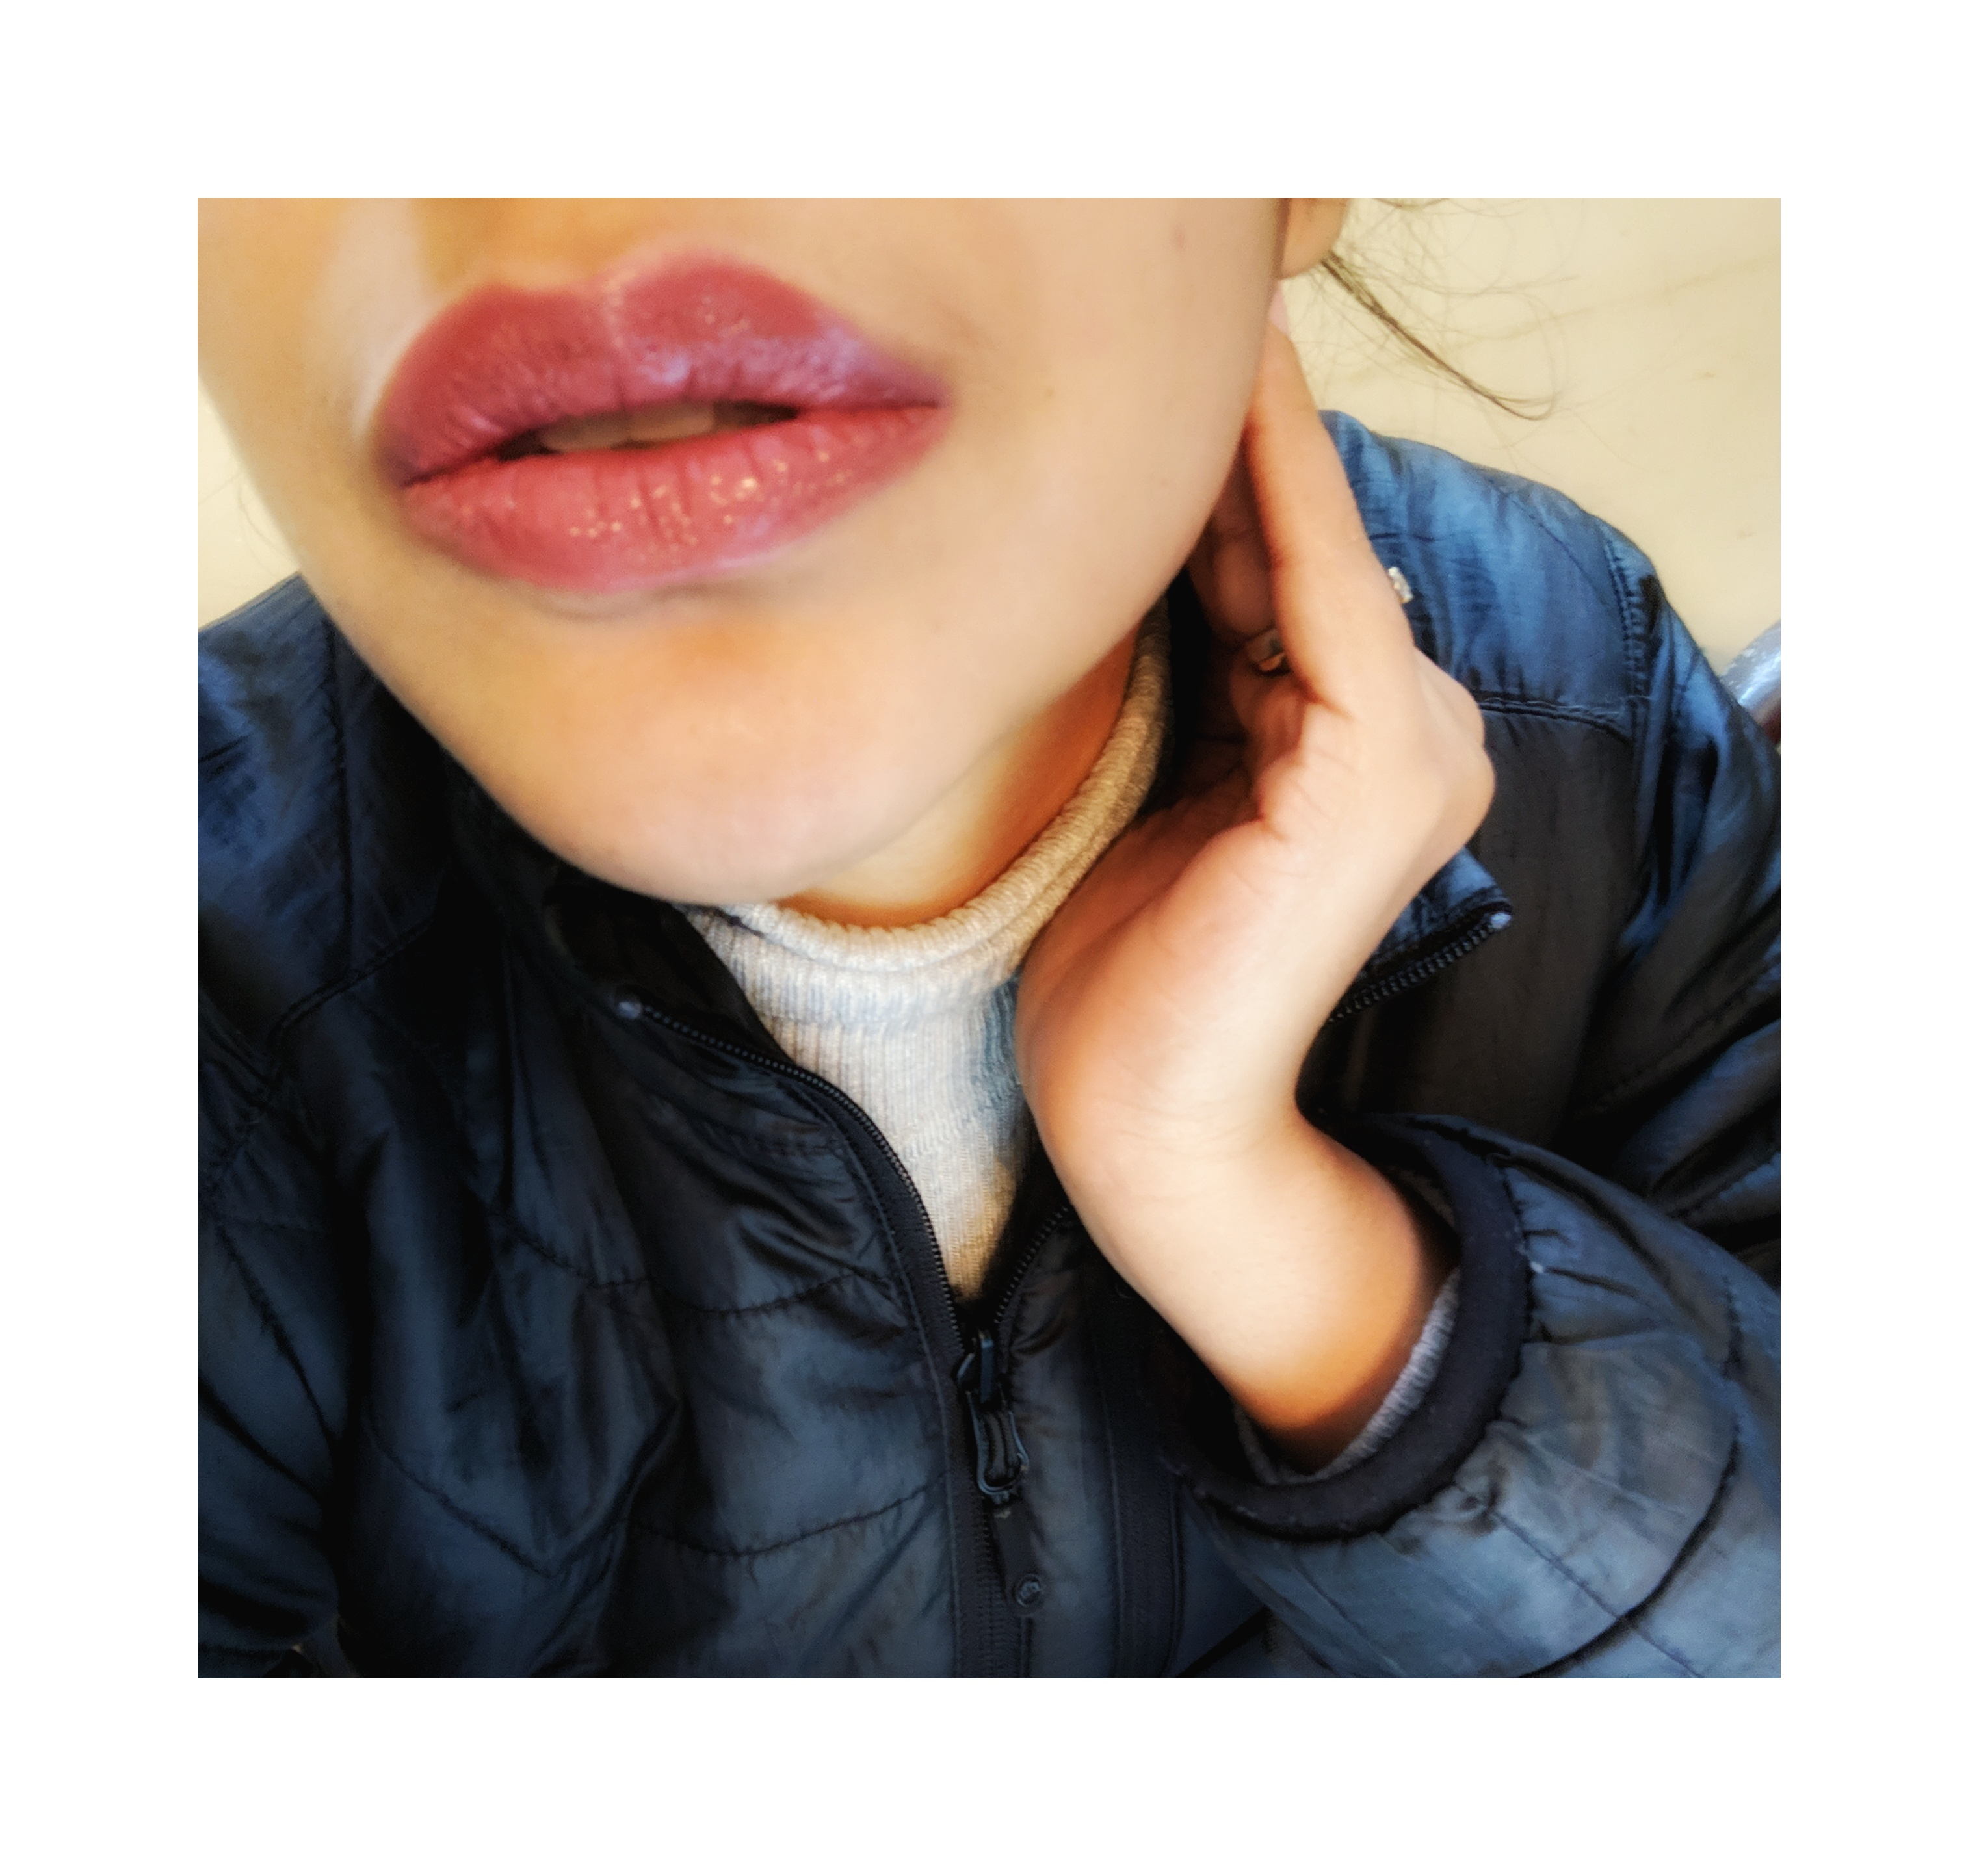 Let's go nude… on lips!